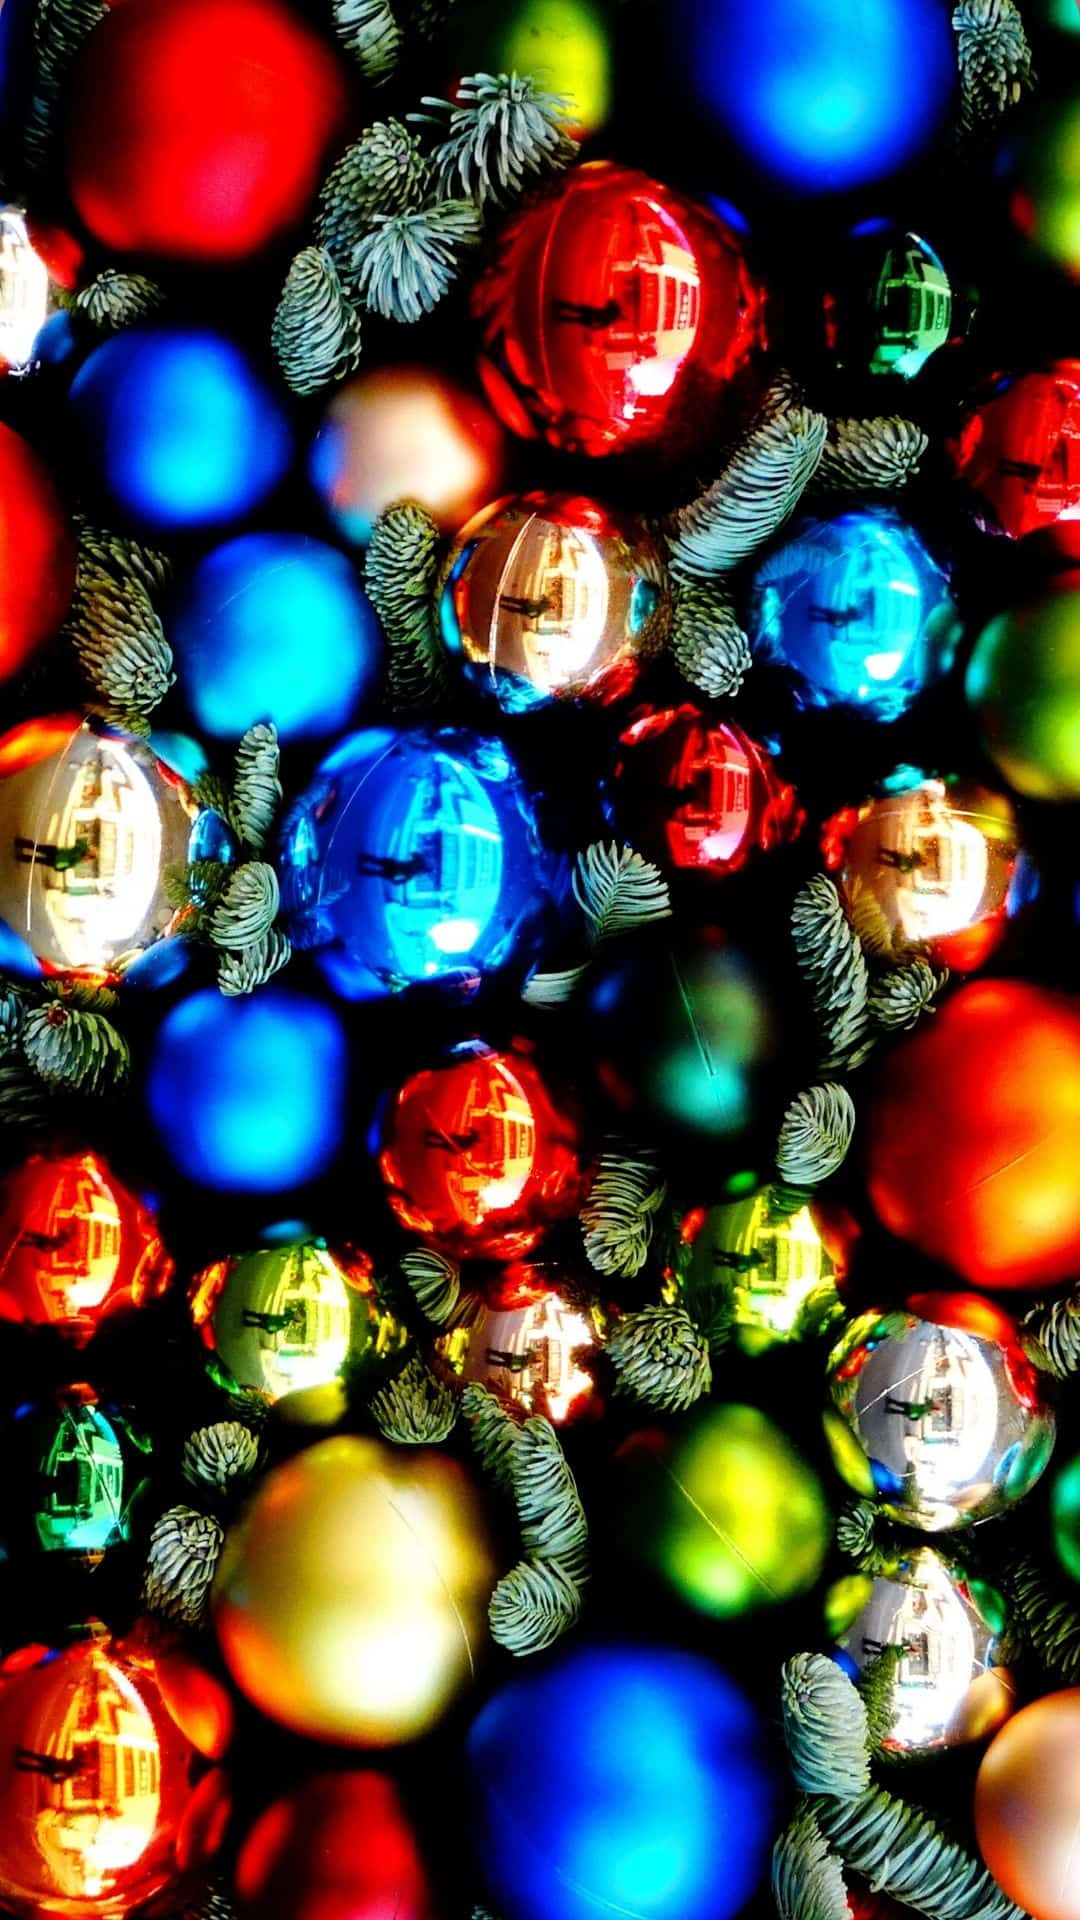 Cozy Christmas Backgrounds For iPhone Wallpaper Shiny Christmas Ornaments